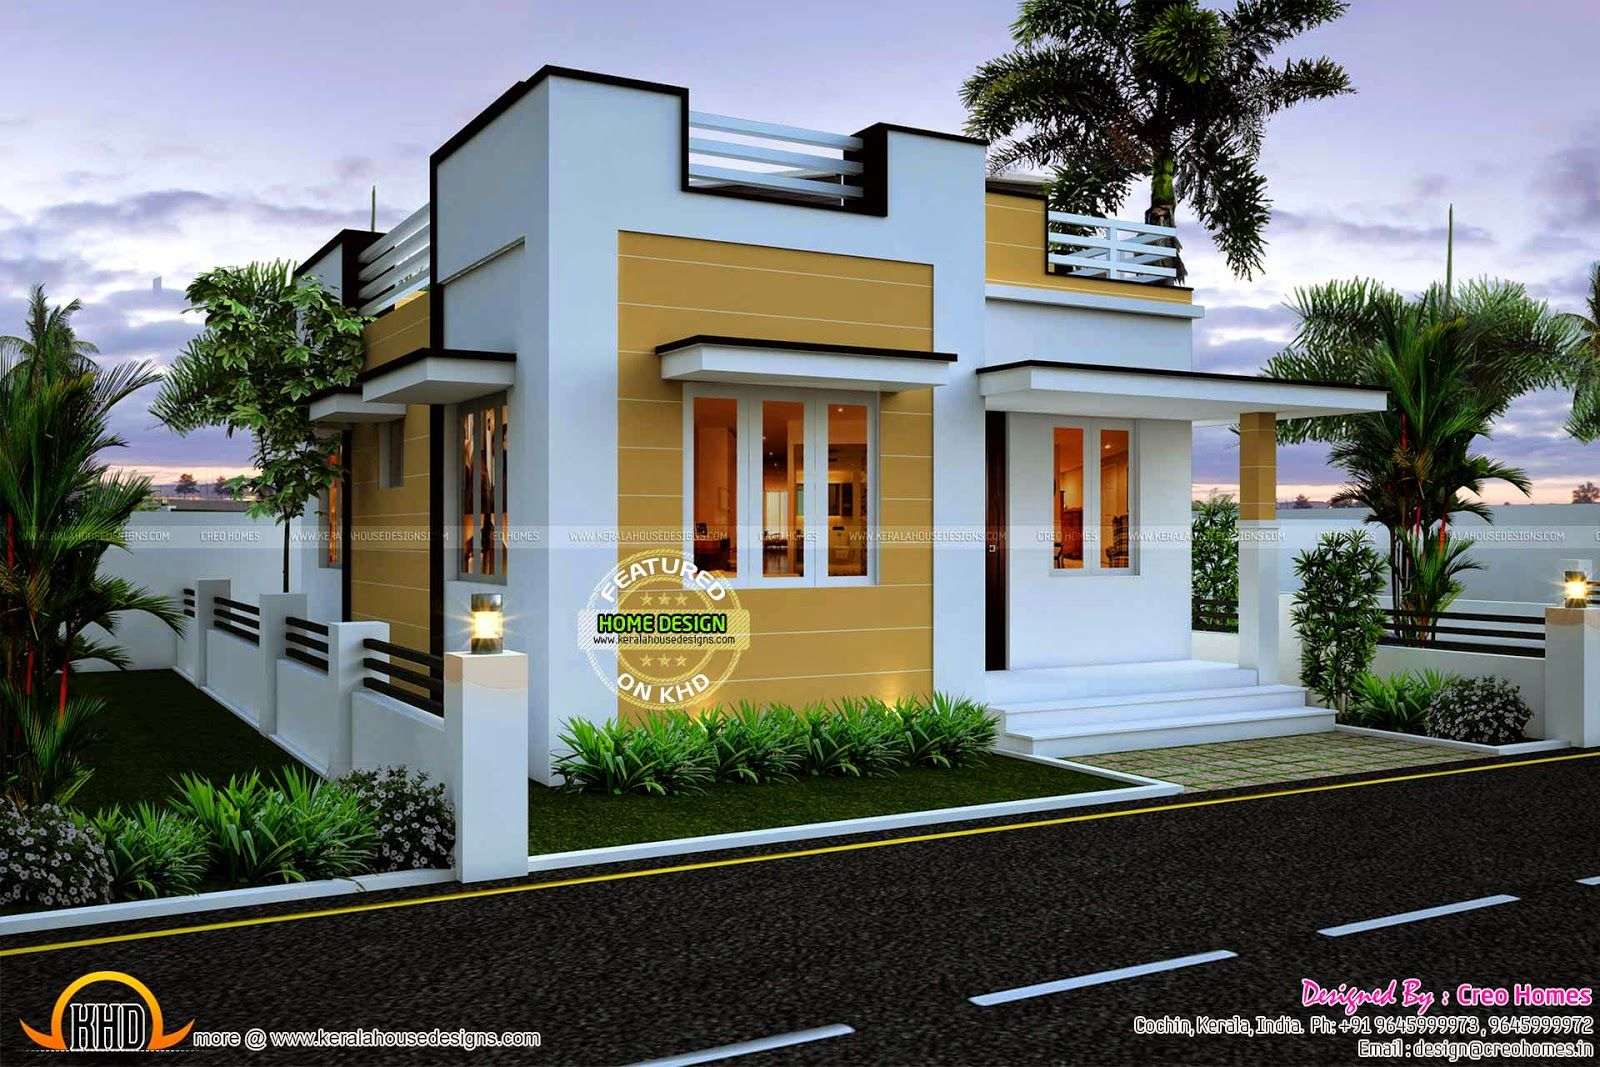 Beautiful bungalow houses in philippines small house design ideas ideal for also anbu spininnovation on pinterest rh